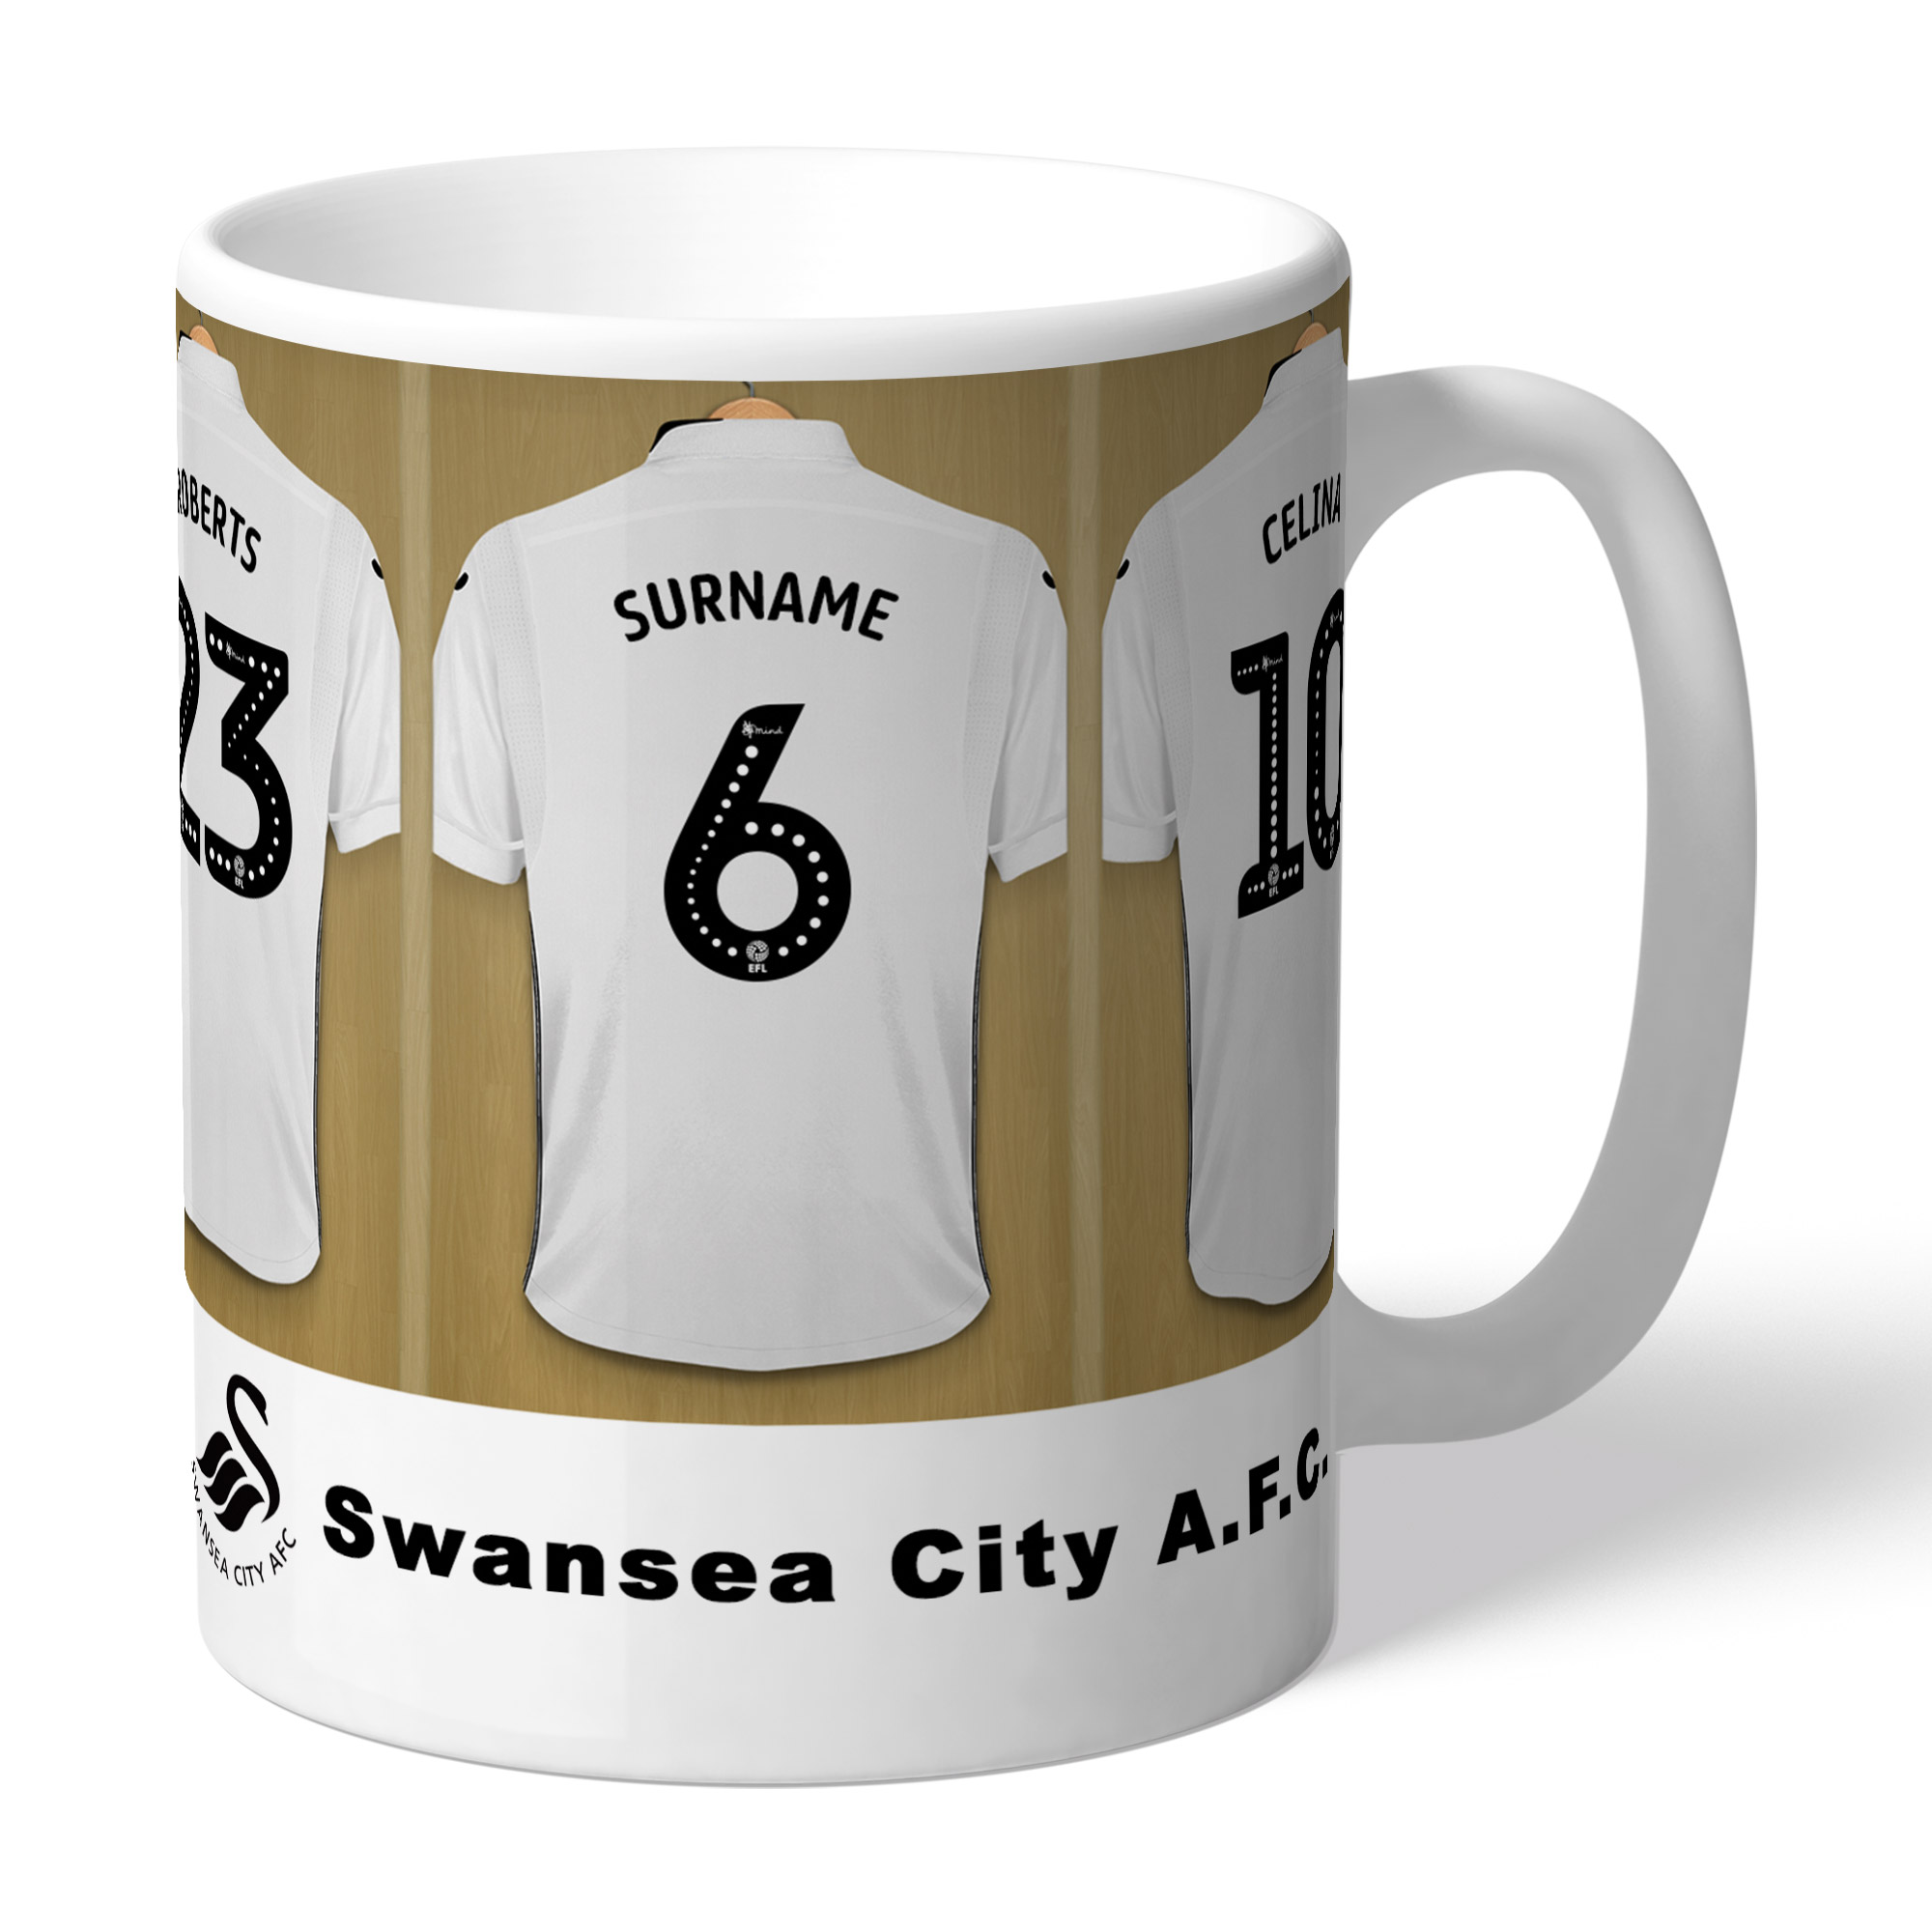 Swansea City AFC Dressing Room Mug